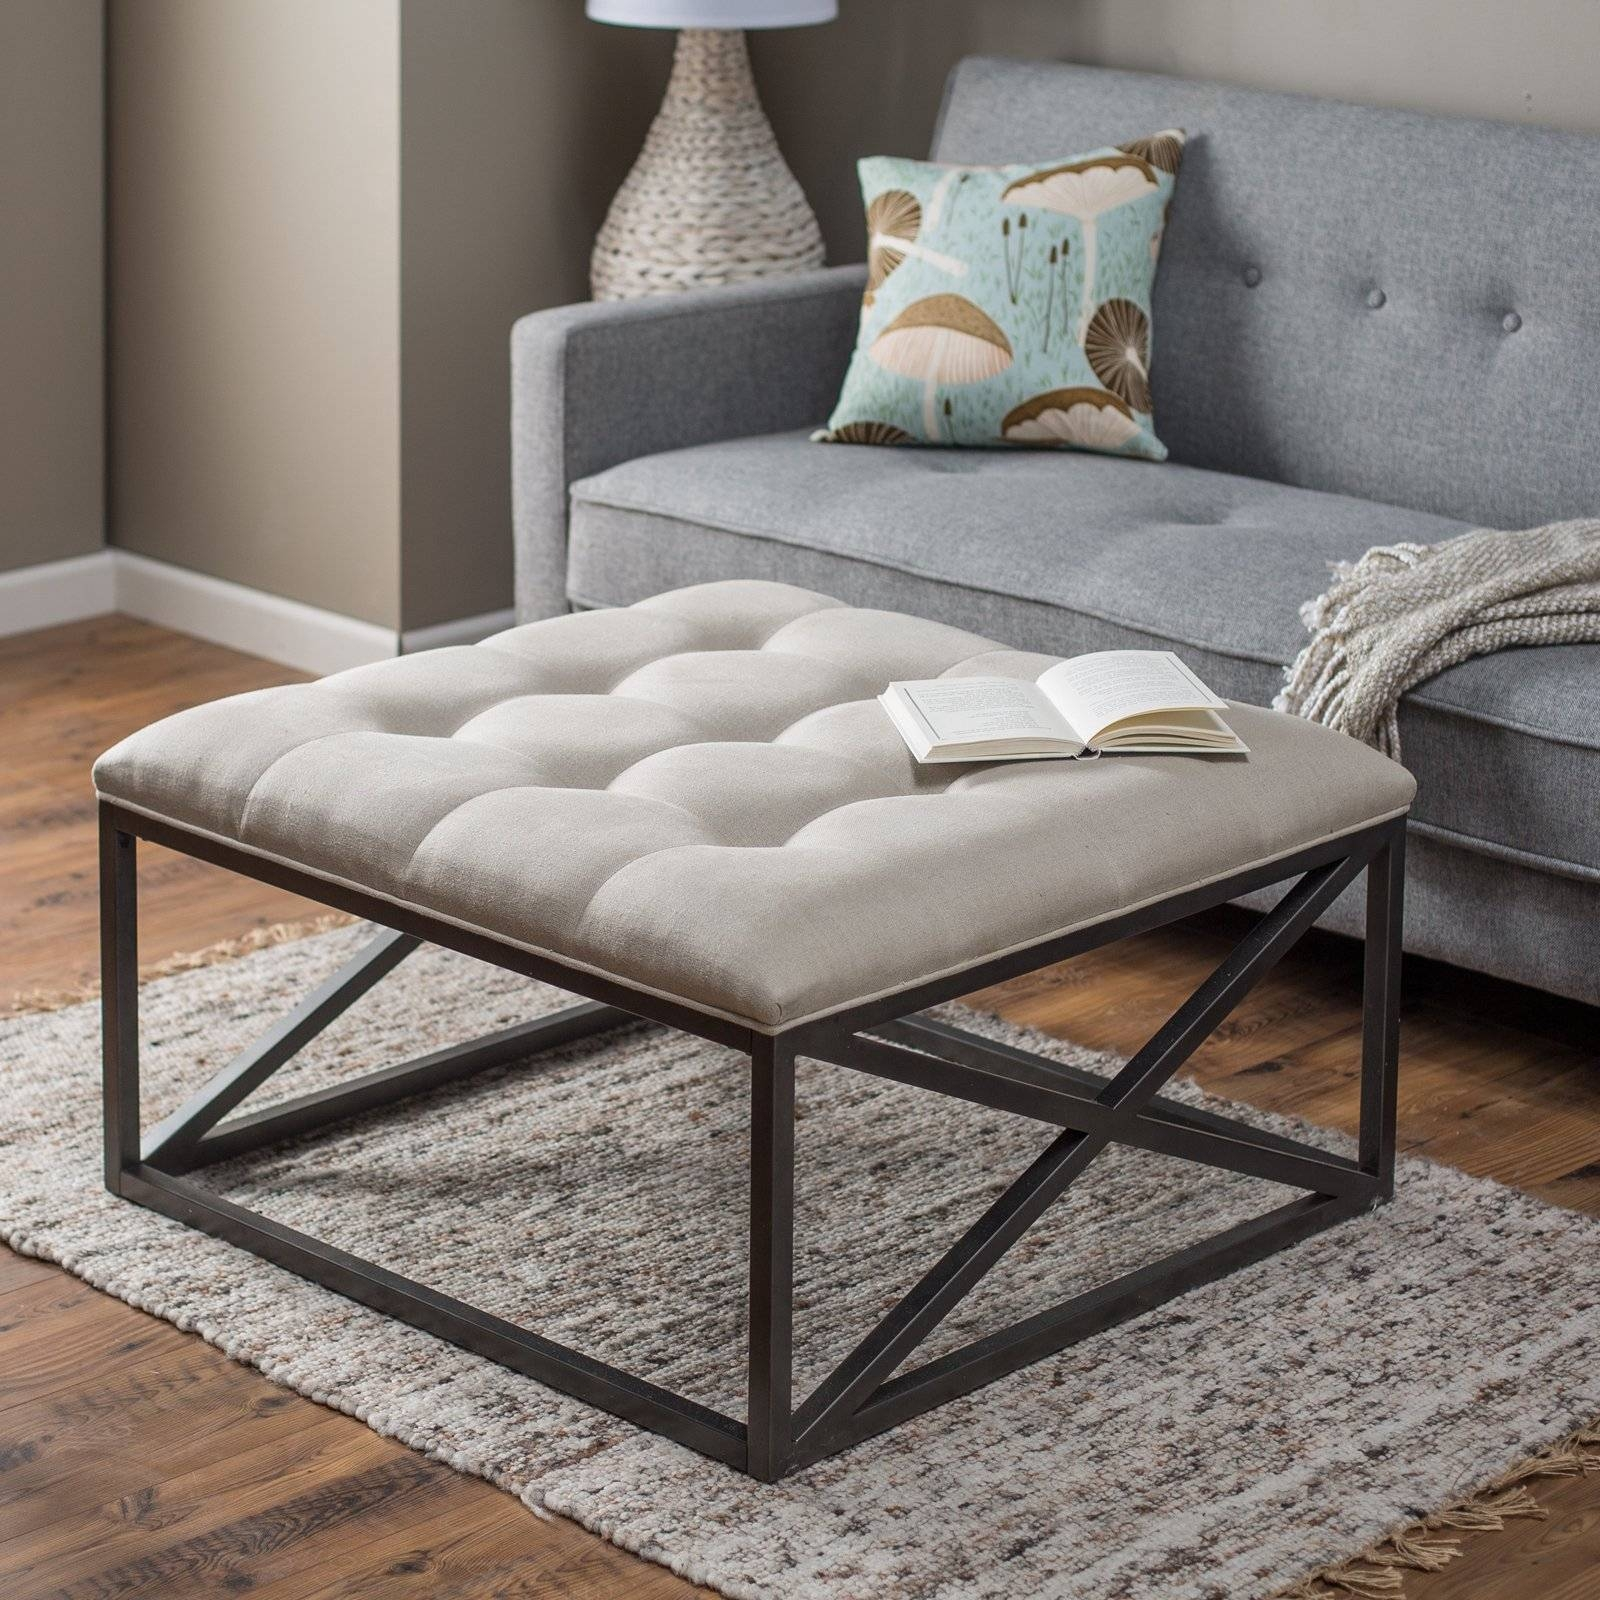 Coffee Table: Fascinating Upholstered Ottoman Coffee Table Design With Round Upholstered Coffee Tables (View 10 of 30)